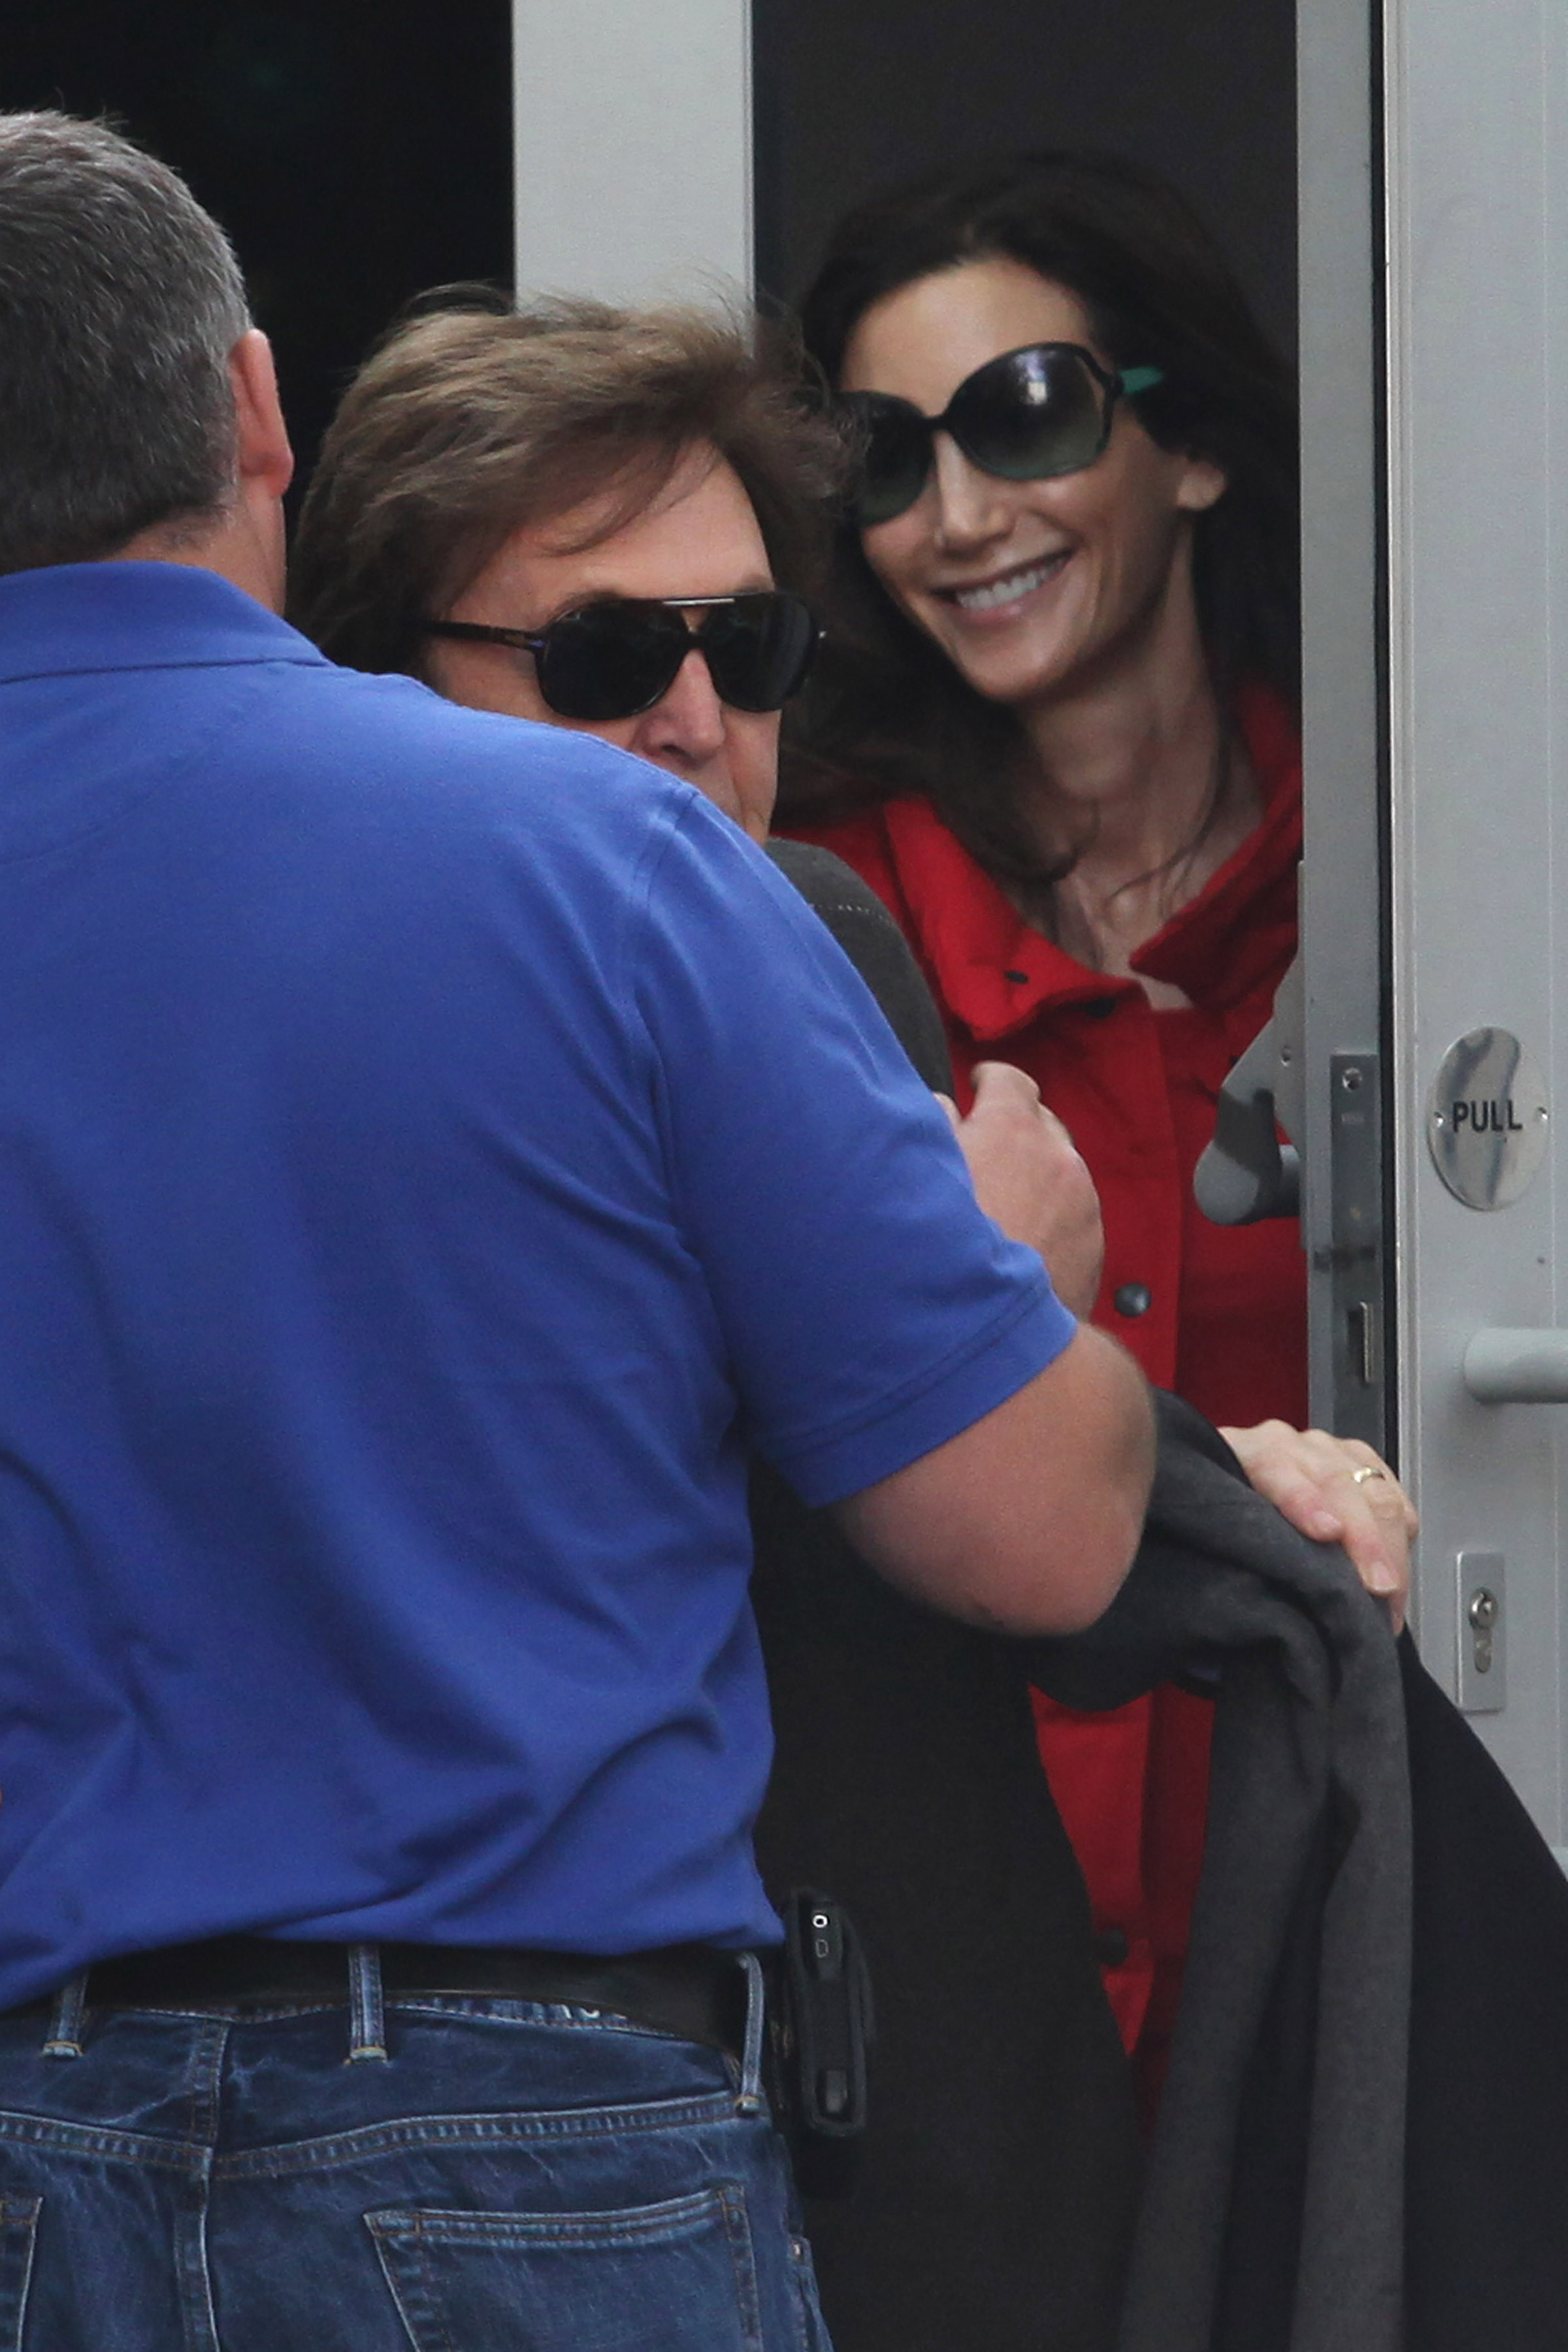 Paul McCartney leads the way out to his car with wife Nancy Shevell.